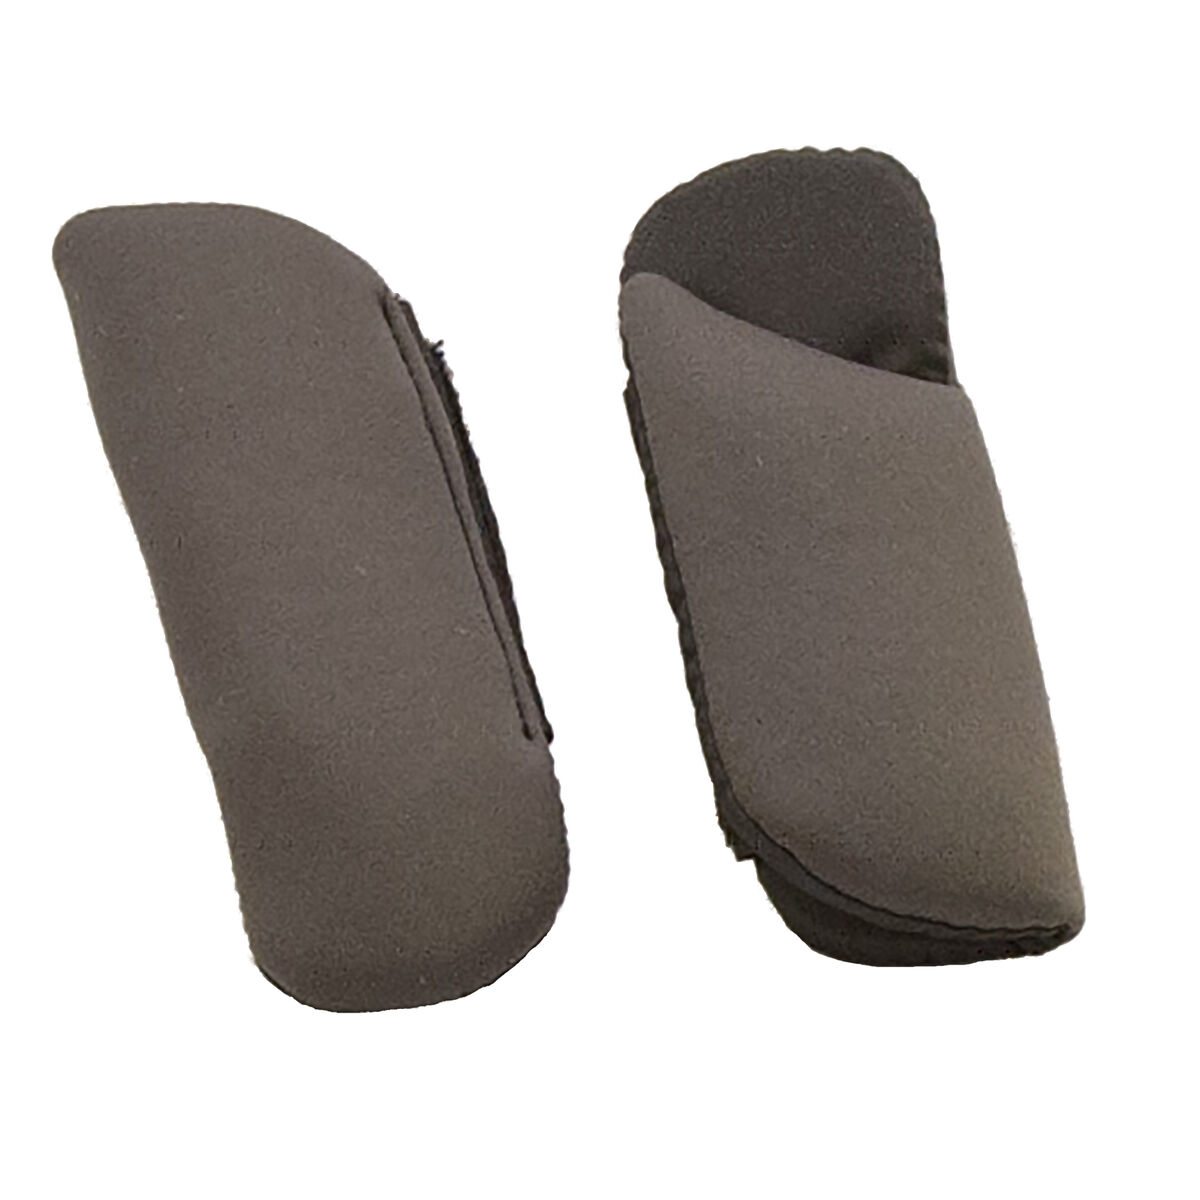 Cosco Car Seat Replacement Parts